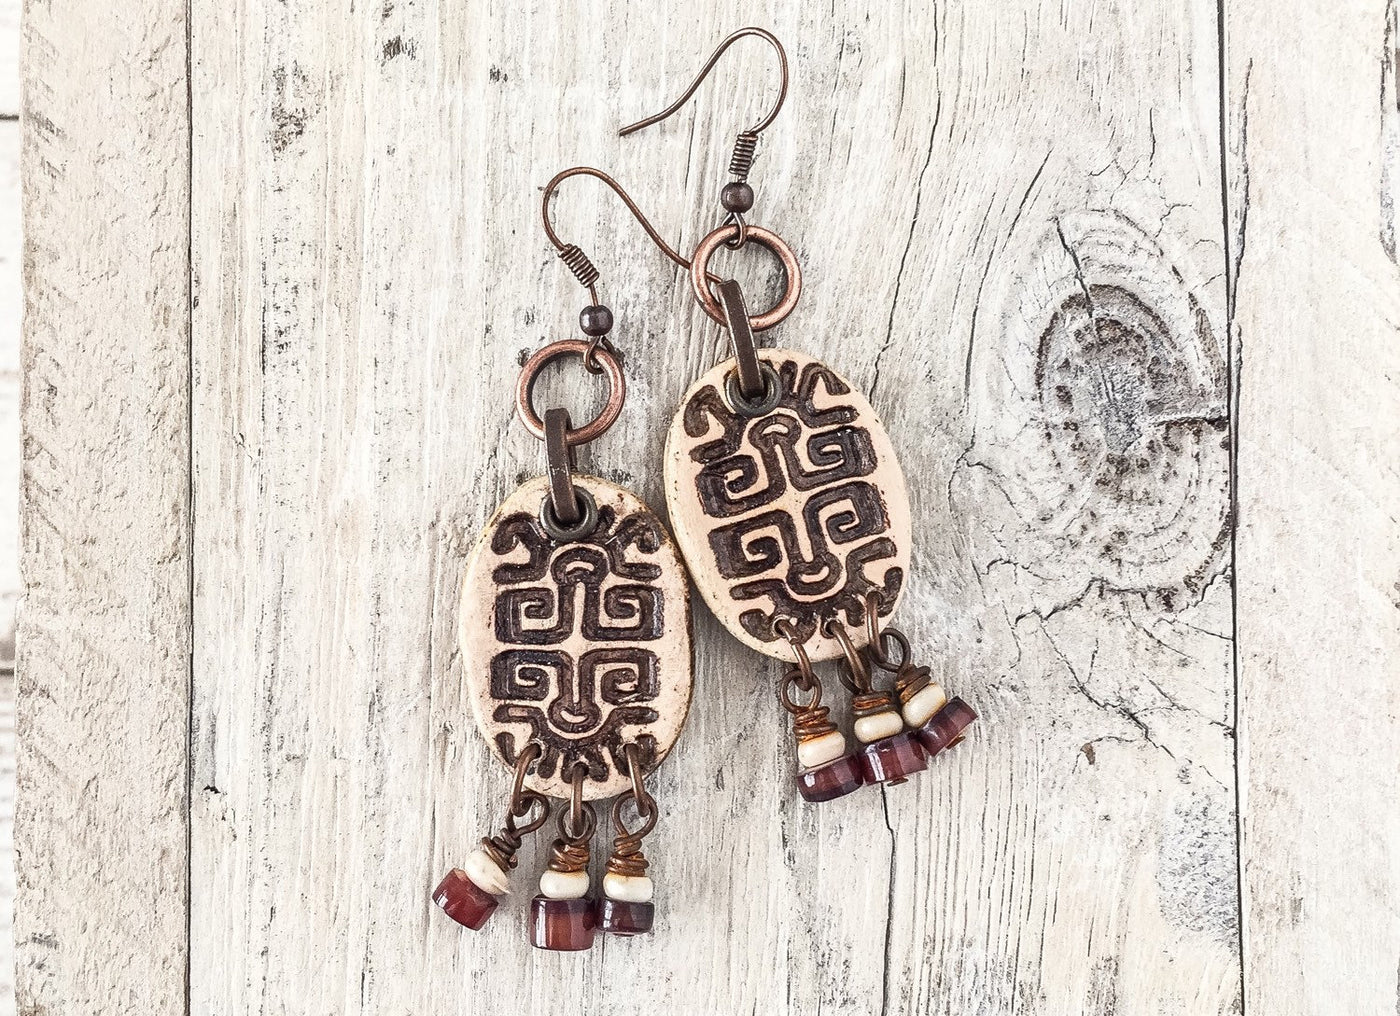 Ethnic Tribal Earrings, African Clay Earrings, Bohemian Gypsy Earrings, Egyptian Stamped Earrings, Rustic Earthy Earrings, E048